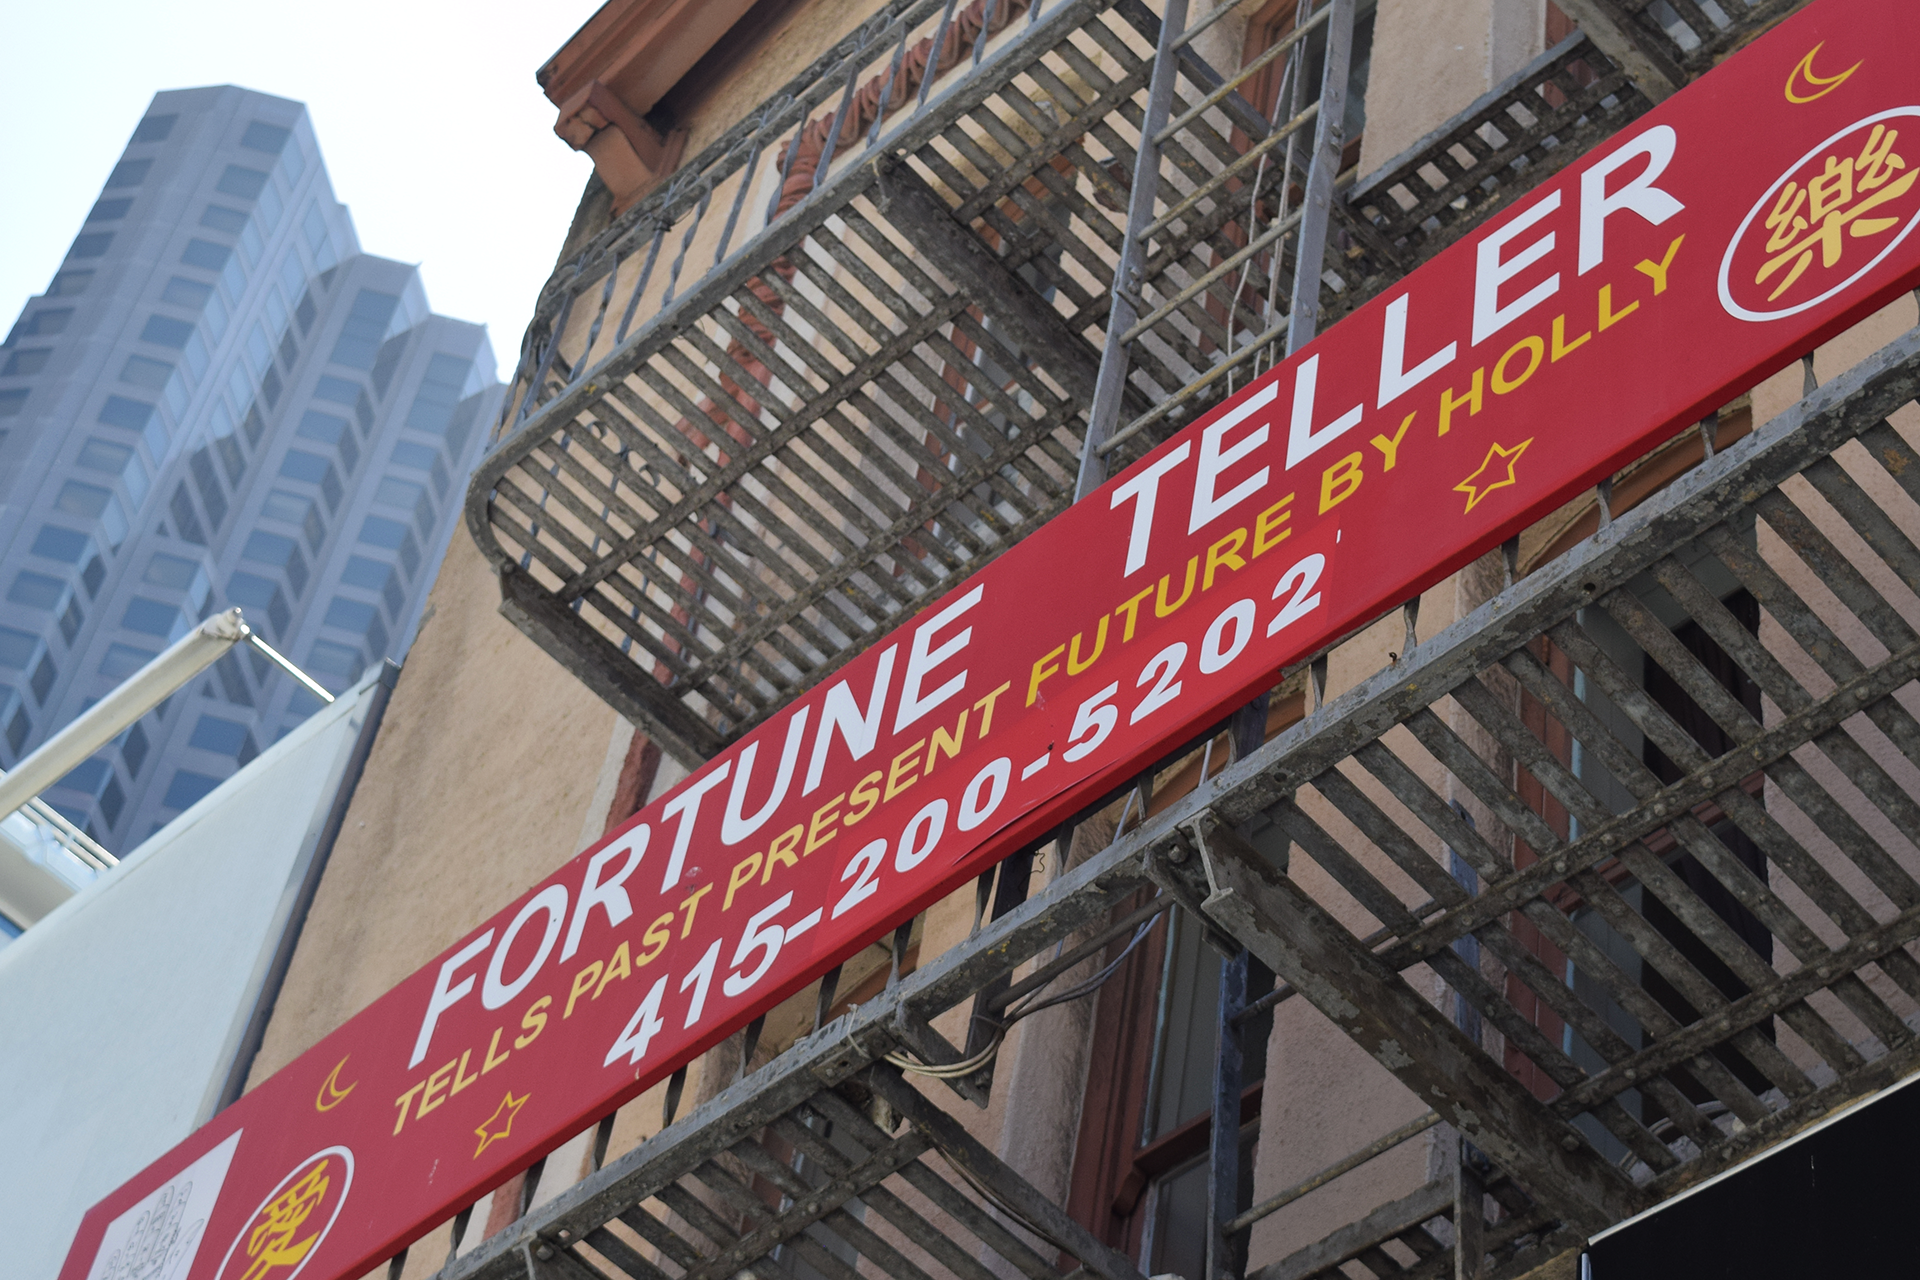 Why Do San Francisco Psychics Need Permits From the Police